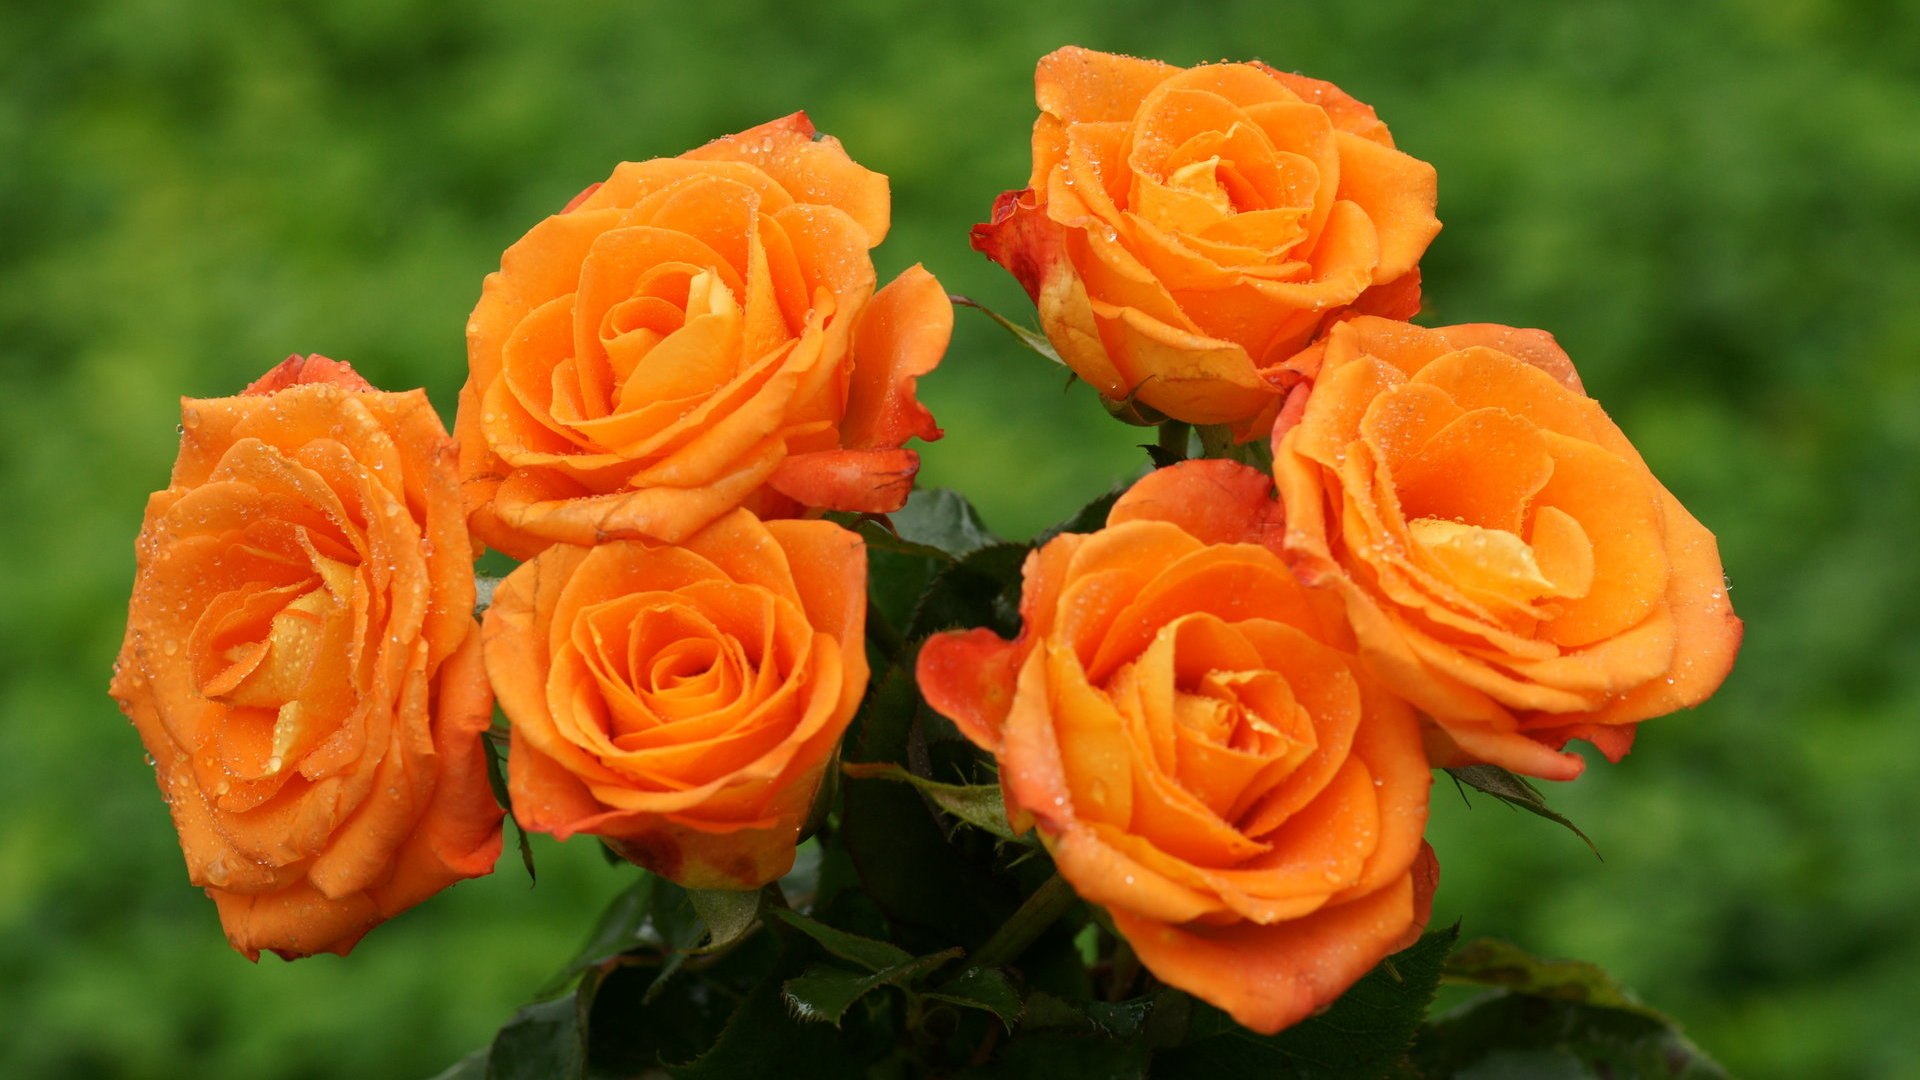 Widescreen wallpaper Orange rosesOrange Roses Wallpaper